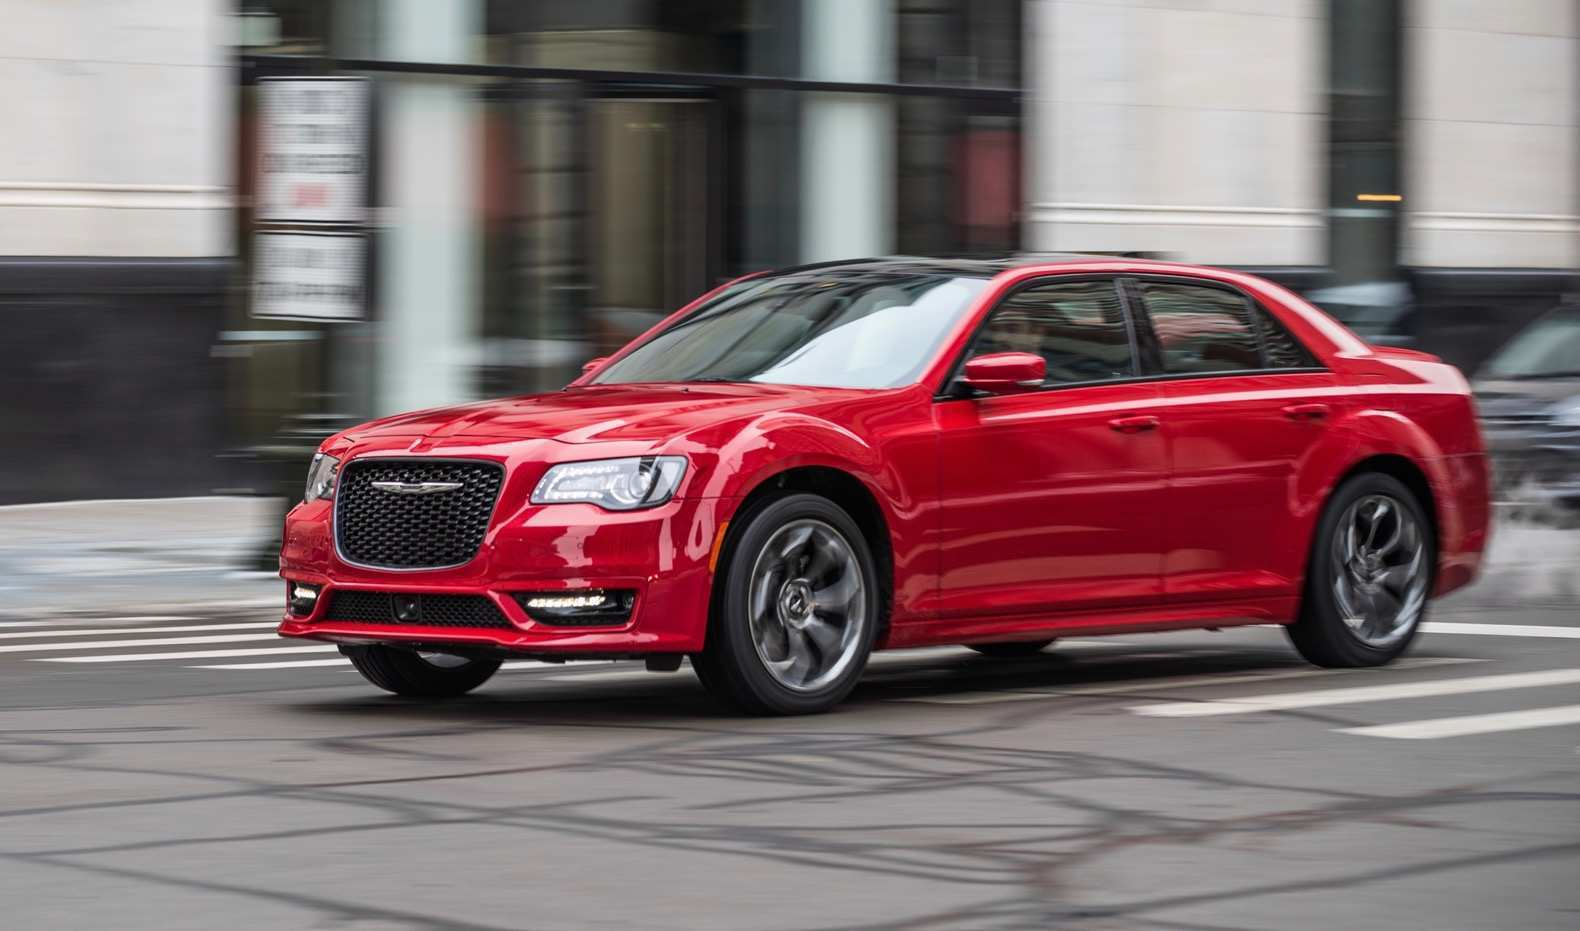 28 A 2020 Chrysler 300 Srt8 Price